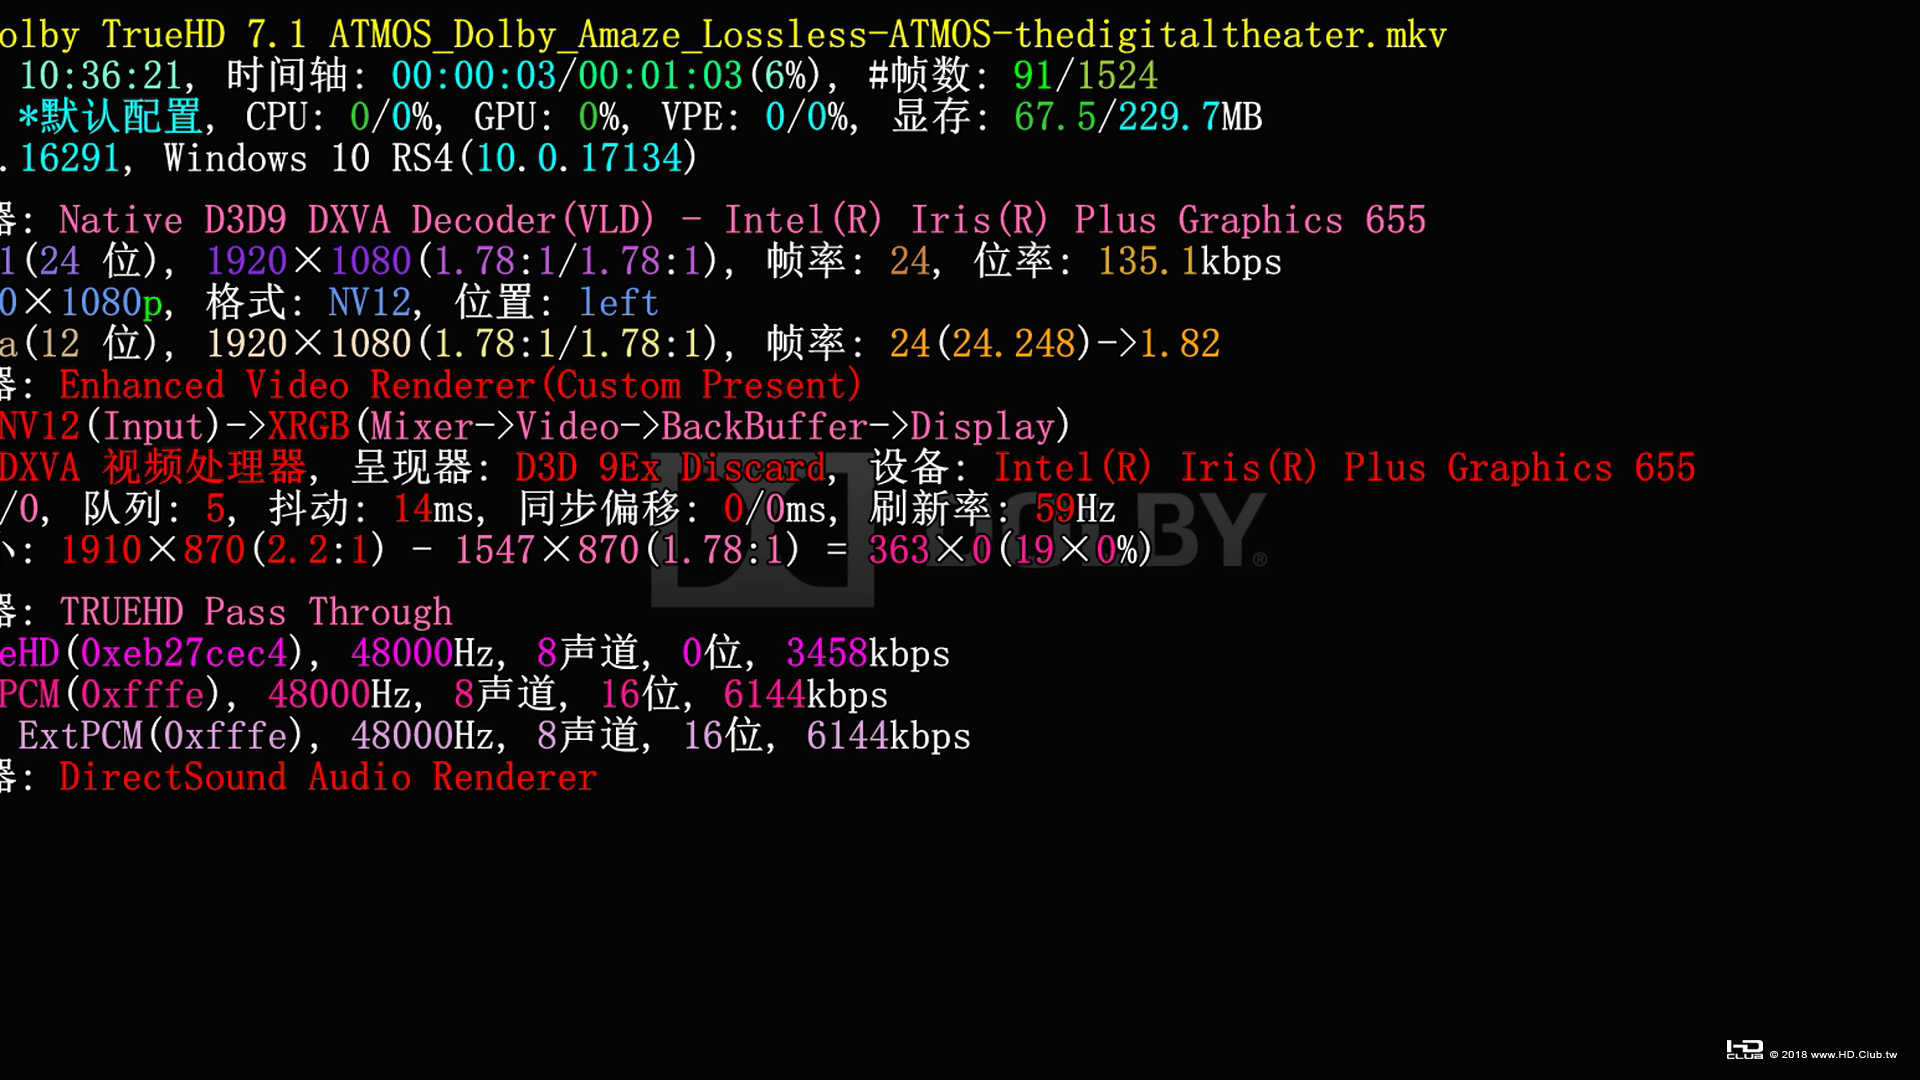 Dolby TrueHD 7.1 ATMOS_Dolby_Amaze_Lossless-ATMOS-thedigitaltheater.mkv_20190113.png